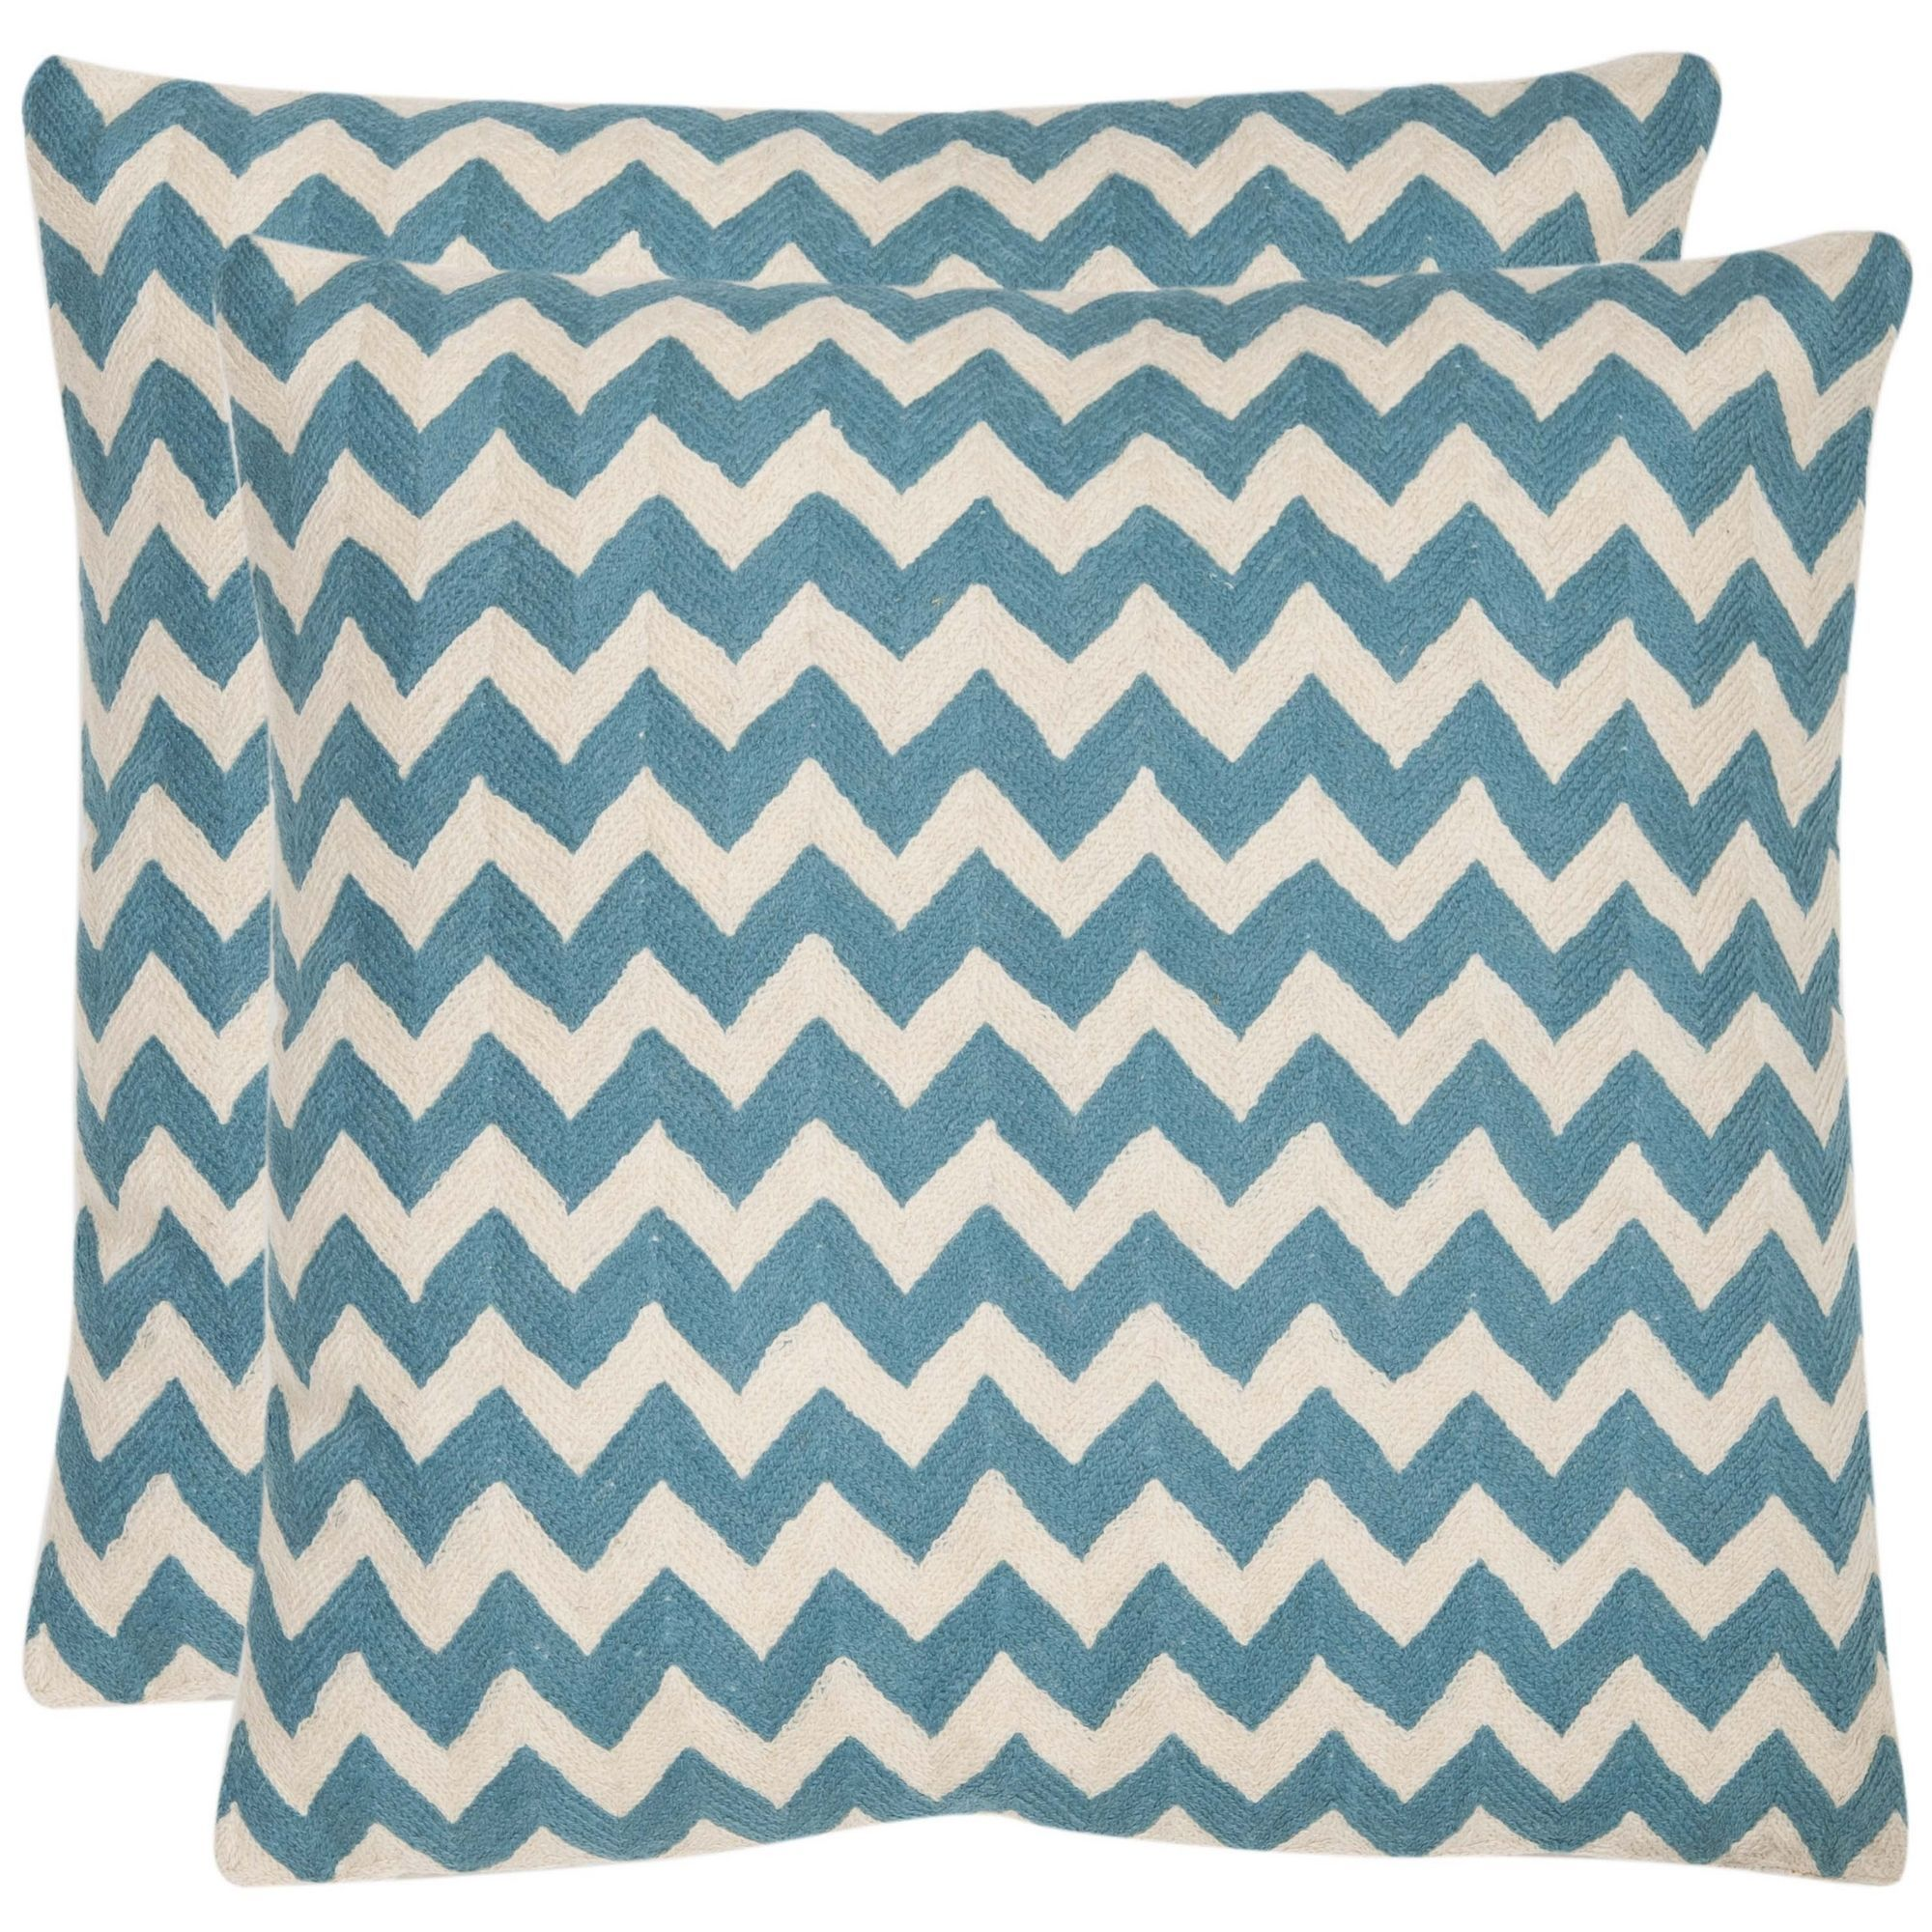 Safavieh zigzag inch embroidered blue decorative pillows set of